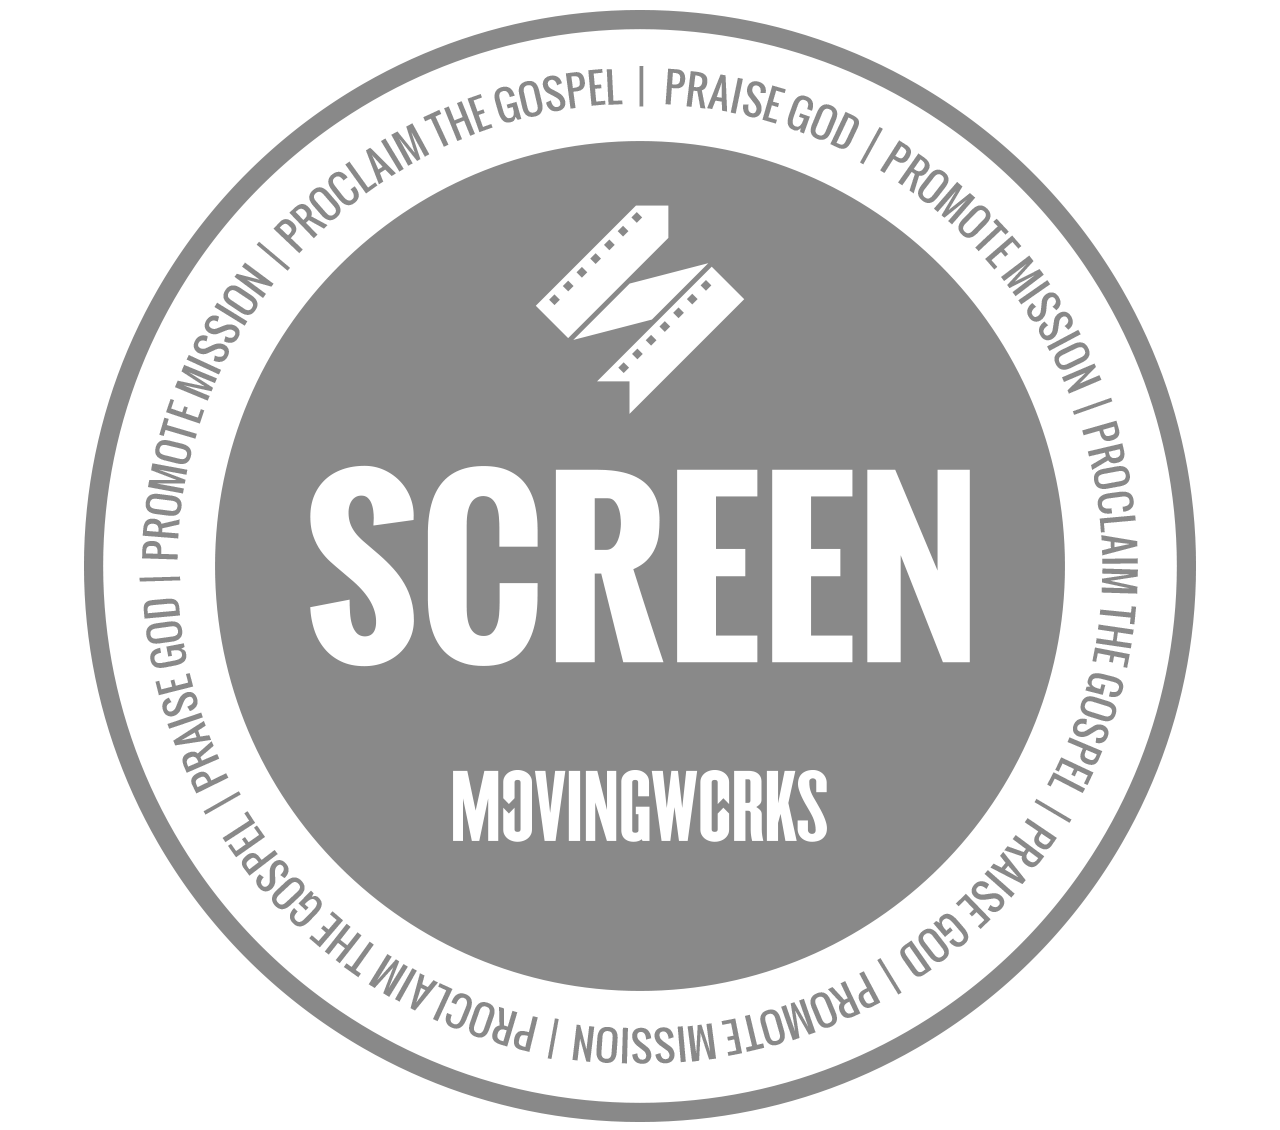 Screen Film